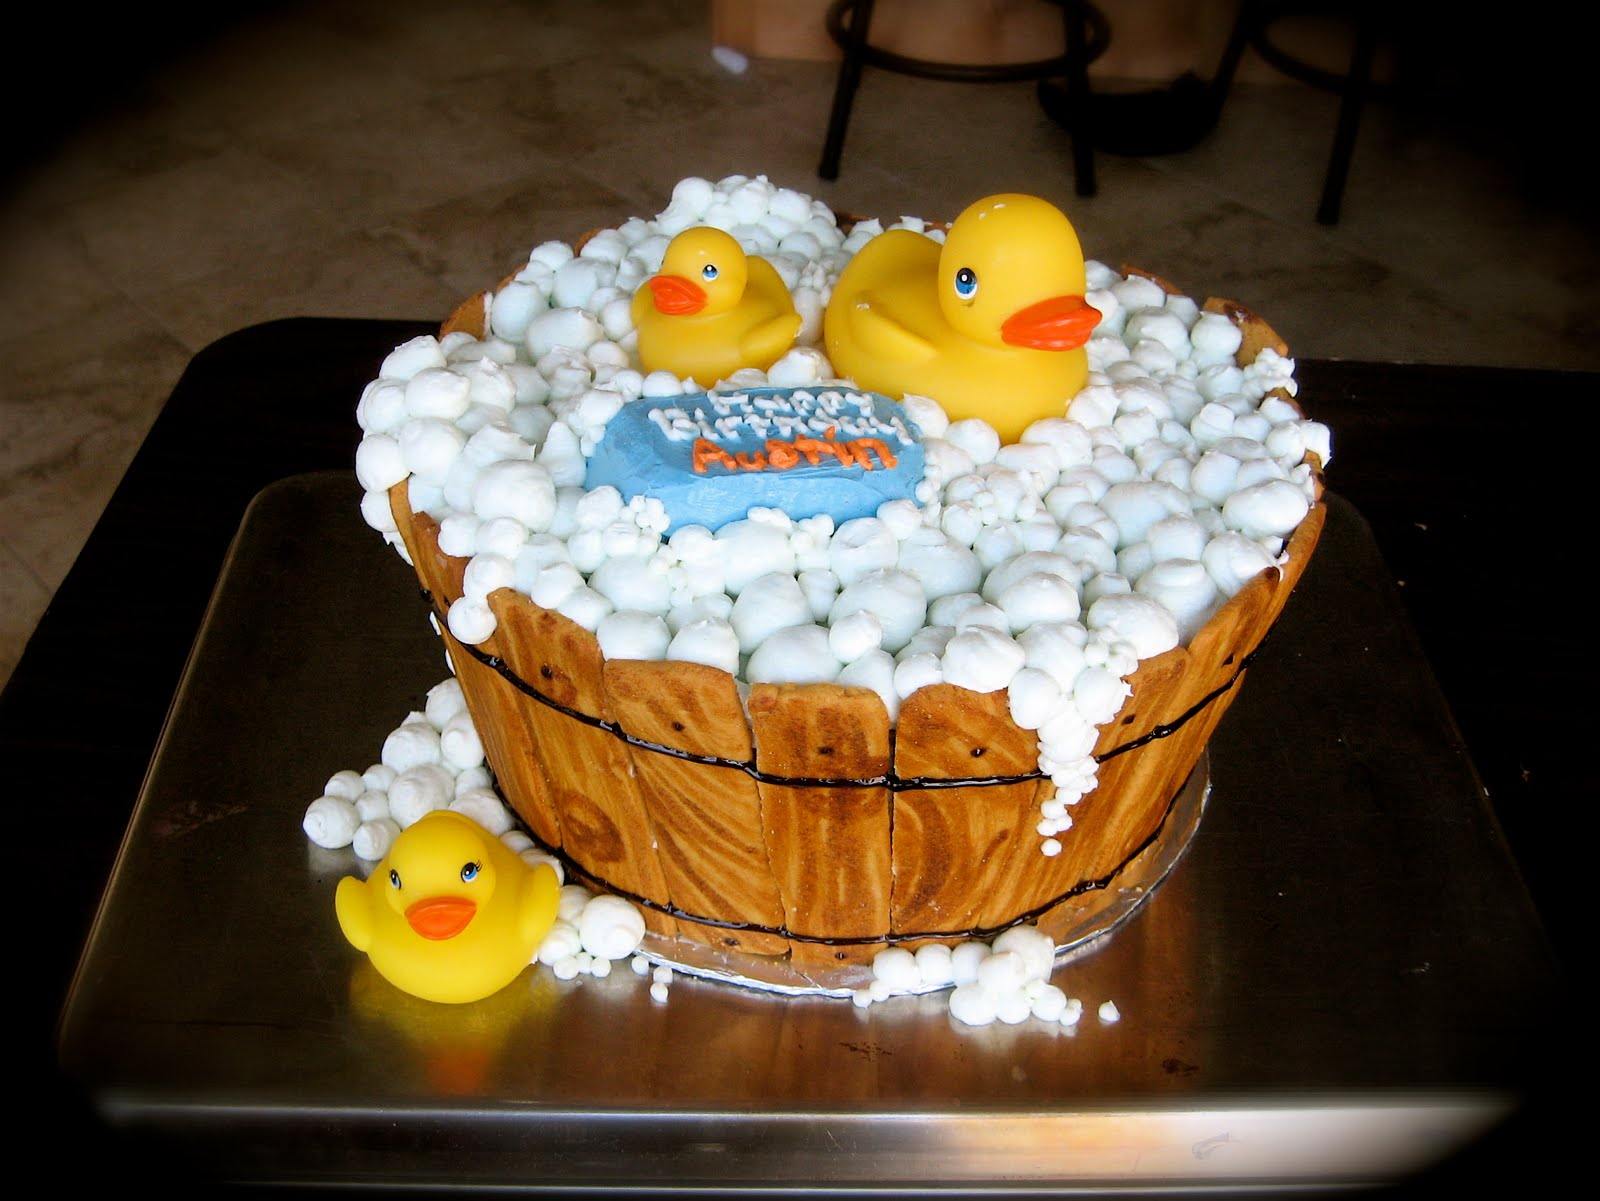 Linseys Creative Cakes Ducky Cake the one that started it all